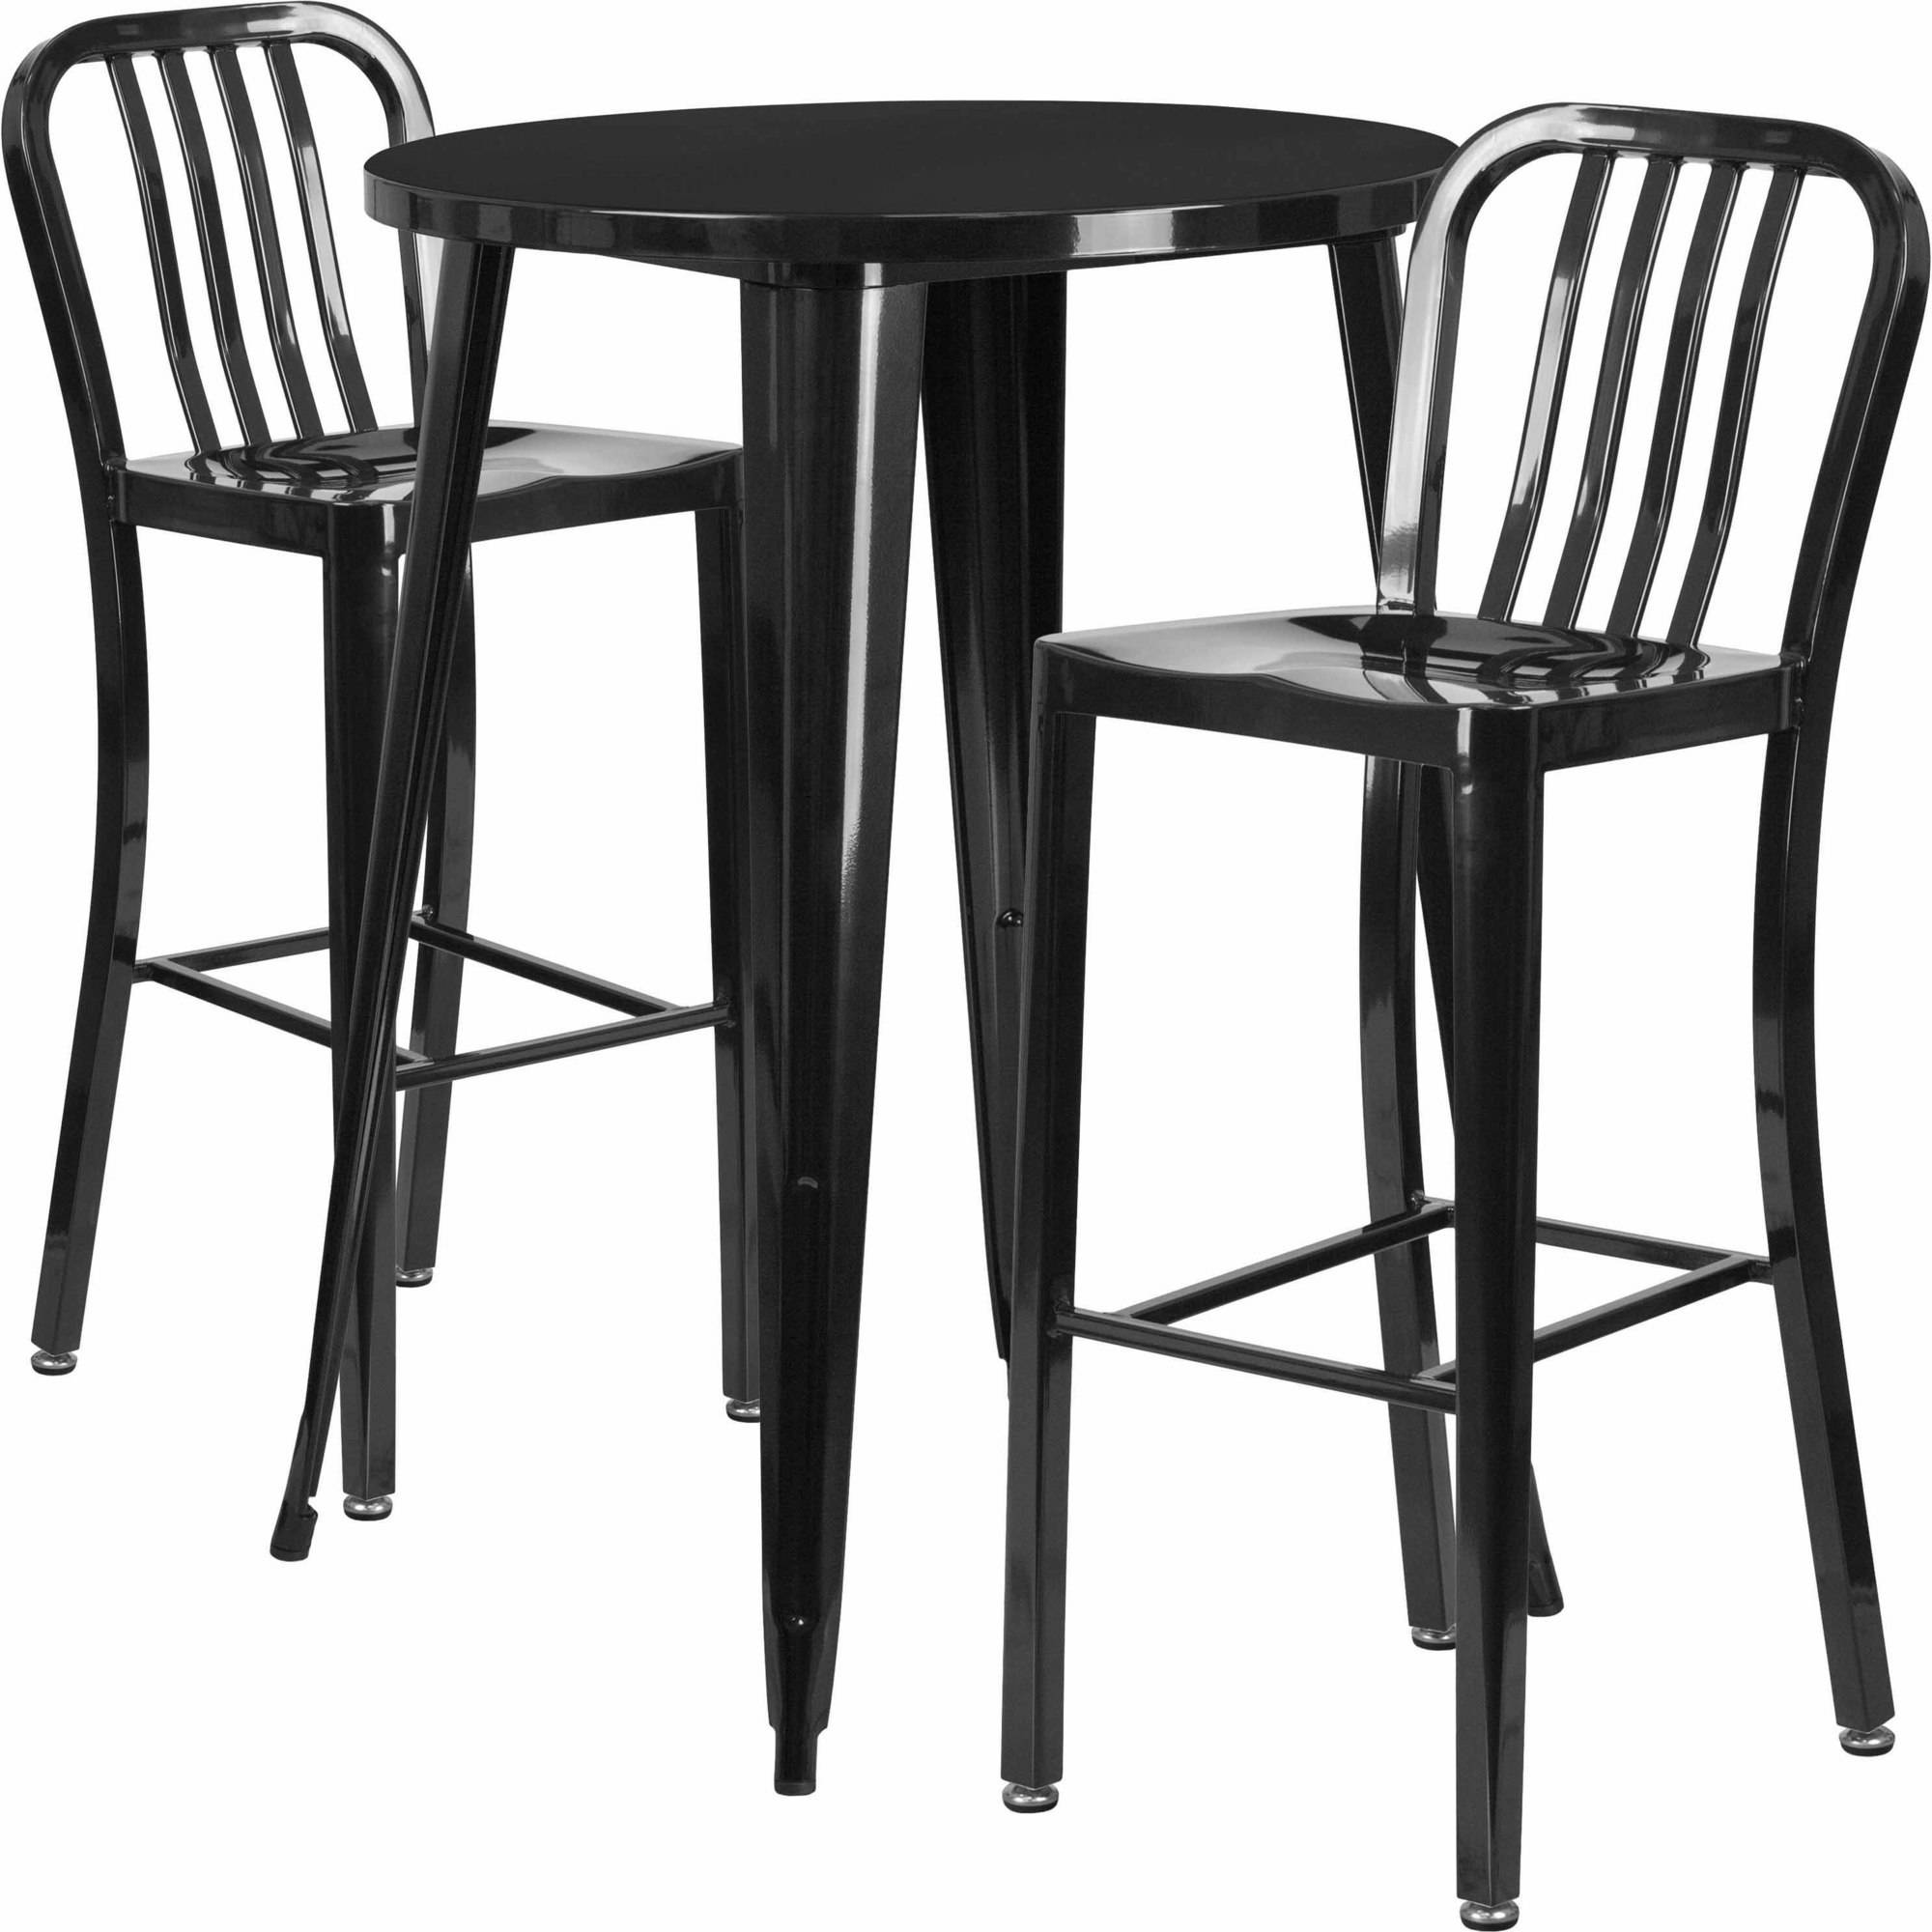 "Flash Furniture 30"" Round Metal Indoor-Outdoor Bar Table Set with 2 Vertical Slat Back Barstools, Multiple Colors"